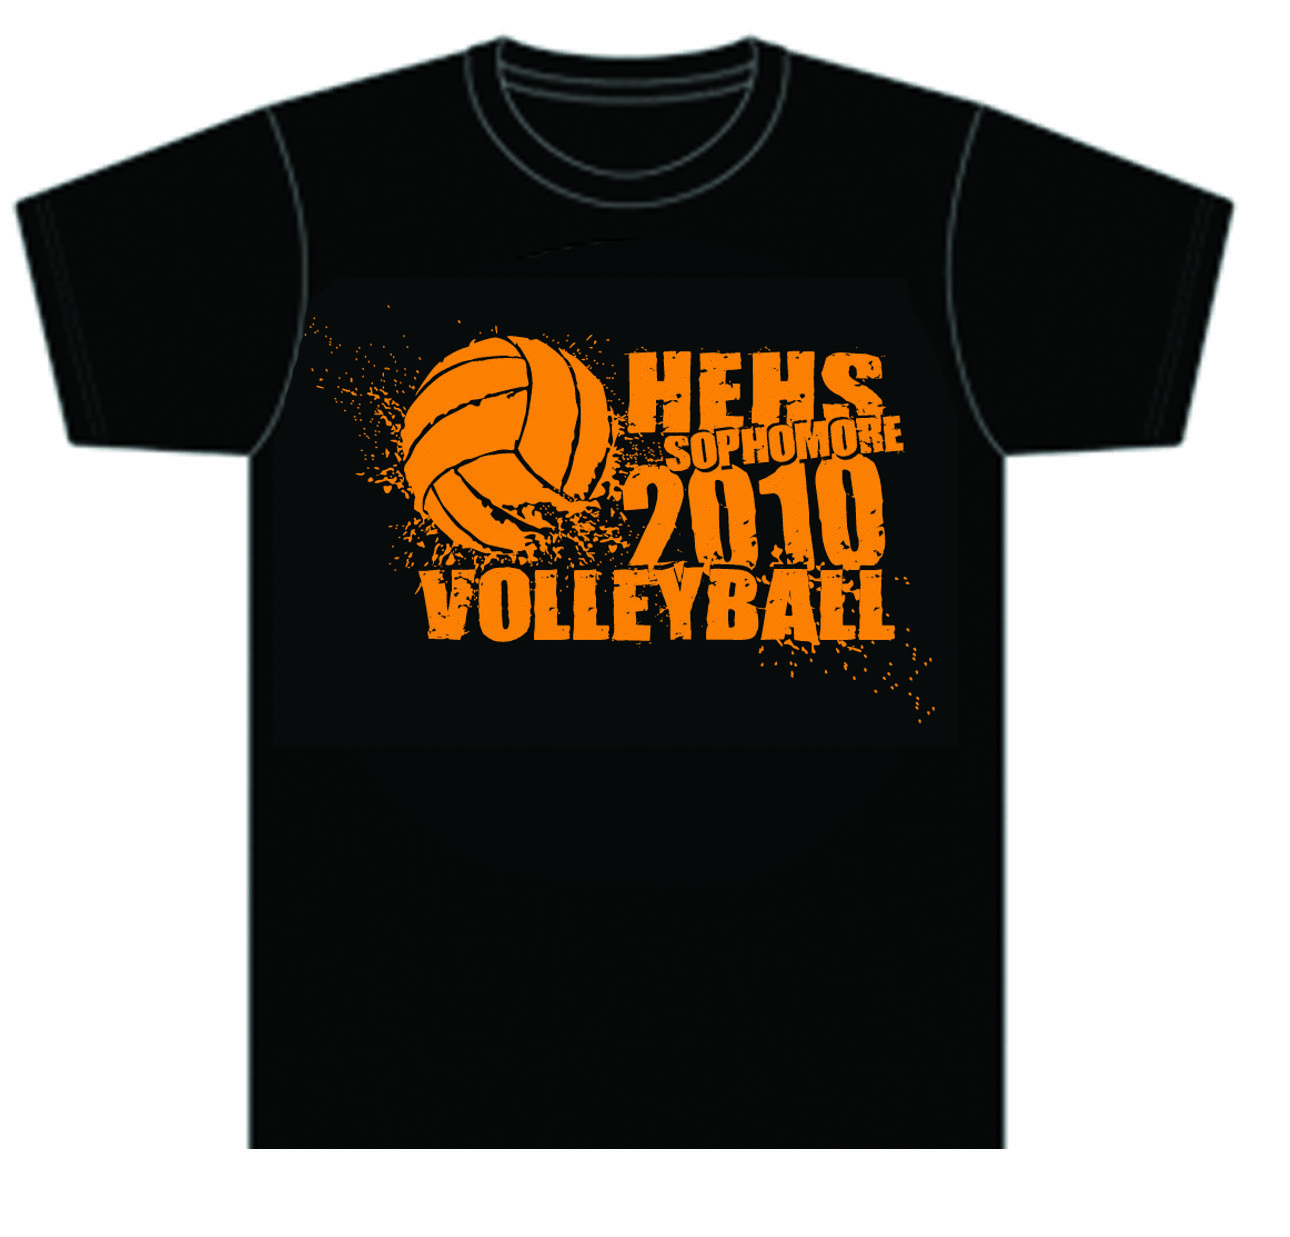 Caz Creations Tshirt Designs Volleyball T Shirt Designs Team Shirt Designs Volleyball Tshirts